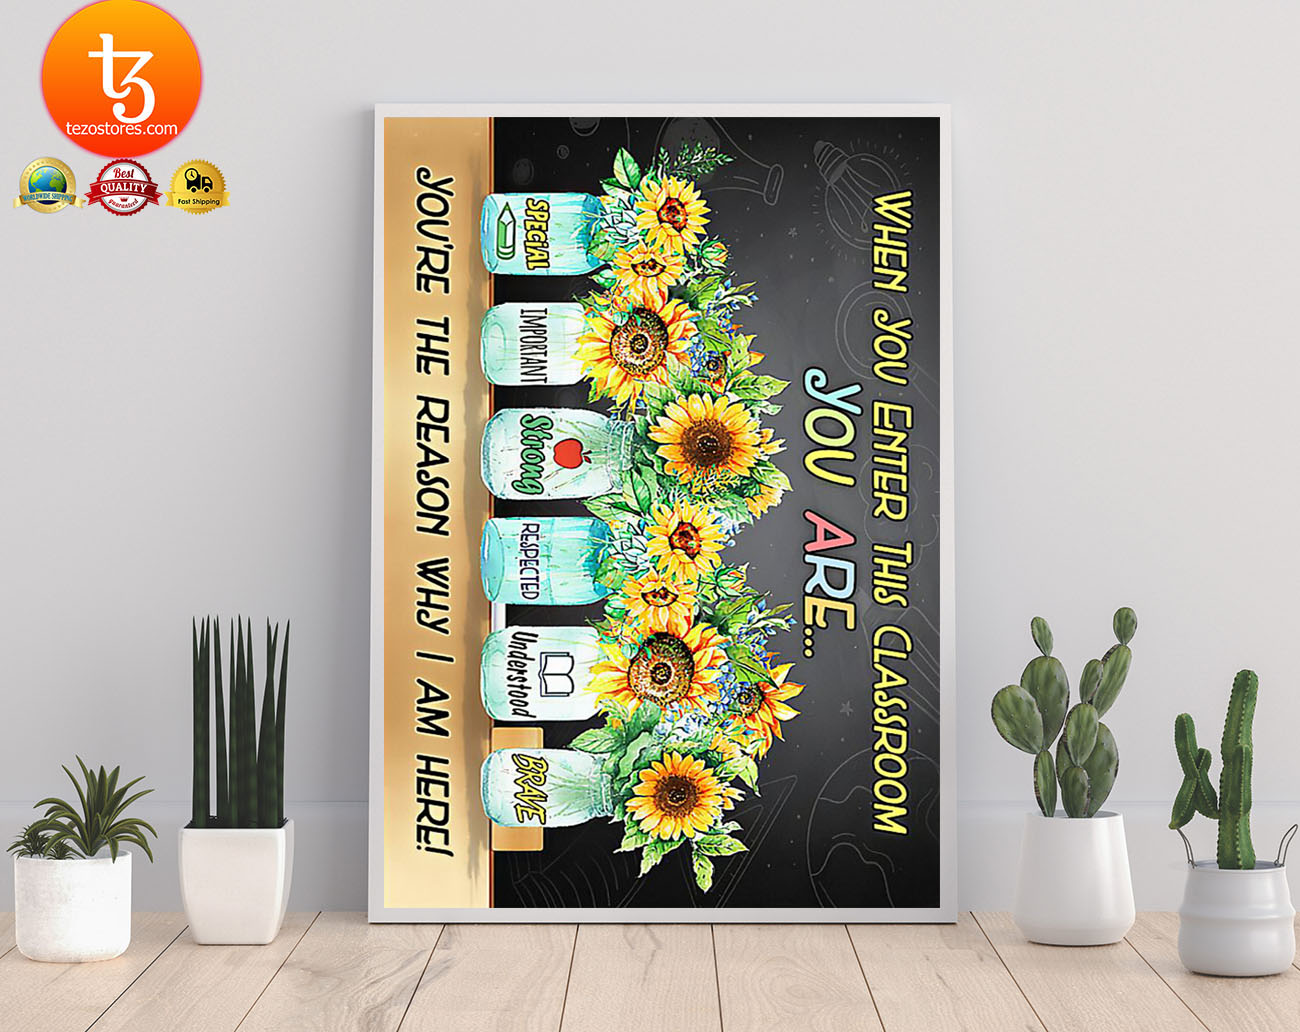 Sunflower when you enter this classroom poster 19